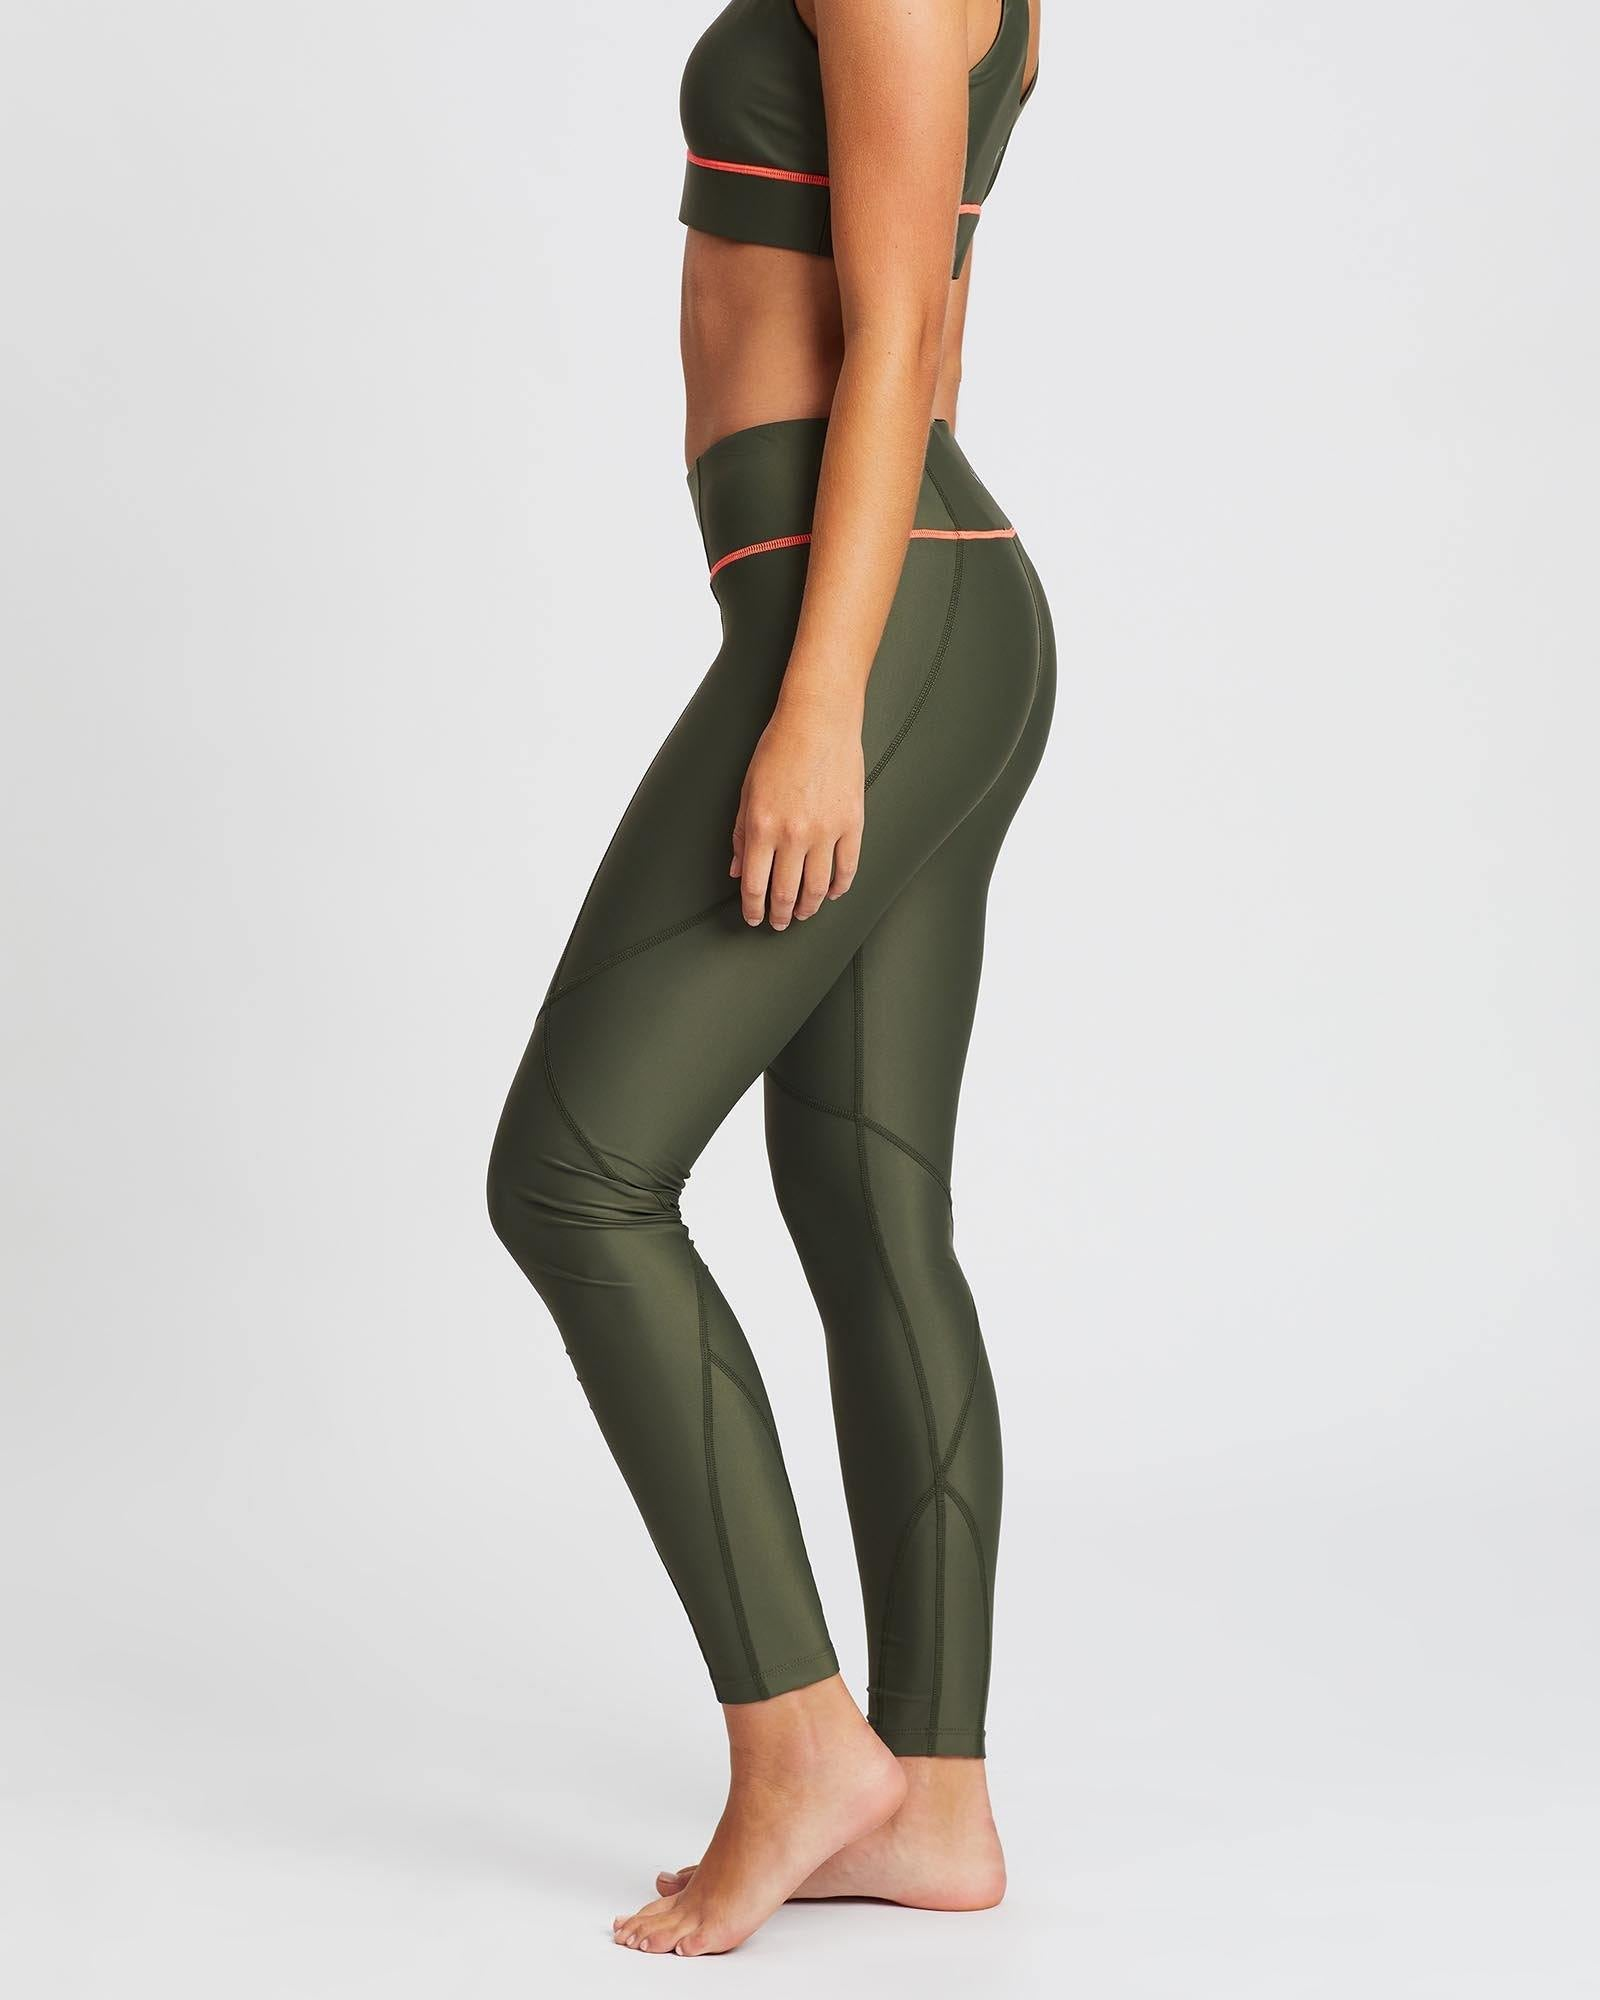 Sergeant Vastus mid waist long army Olive legging with contrast orange stitching between legs and waistband, worn with Pectoralis bra top, side view, for pilates, barre, yoga, gym and studio workouts